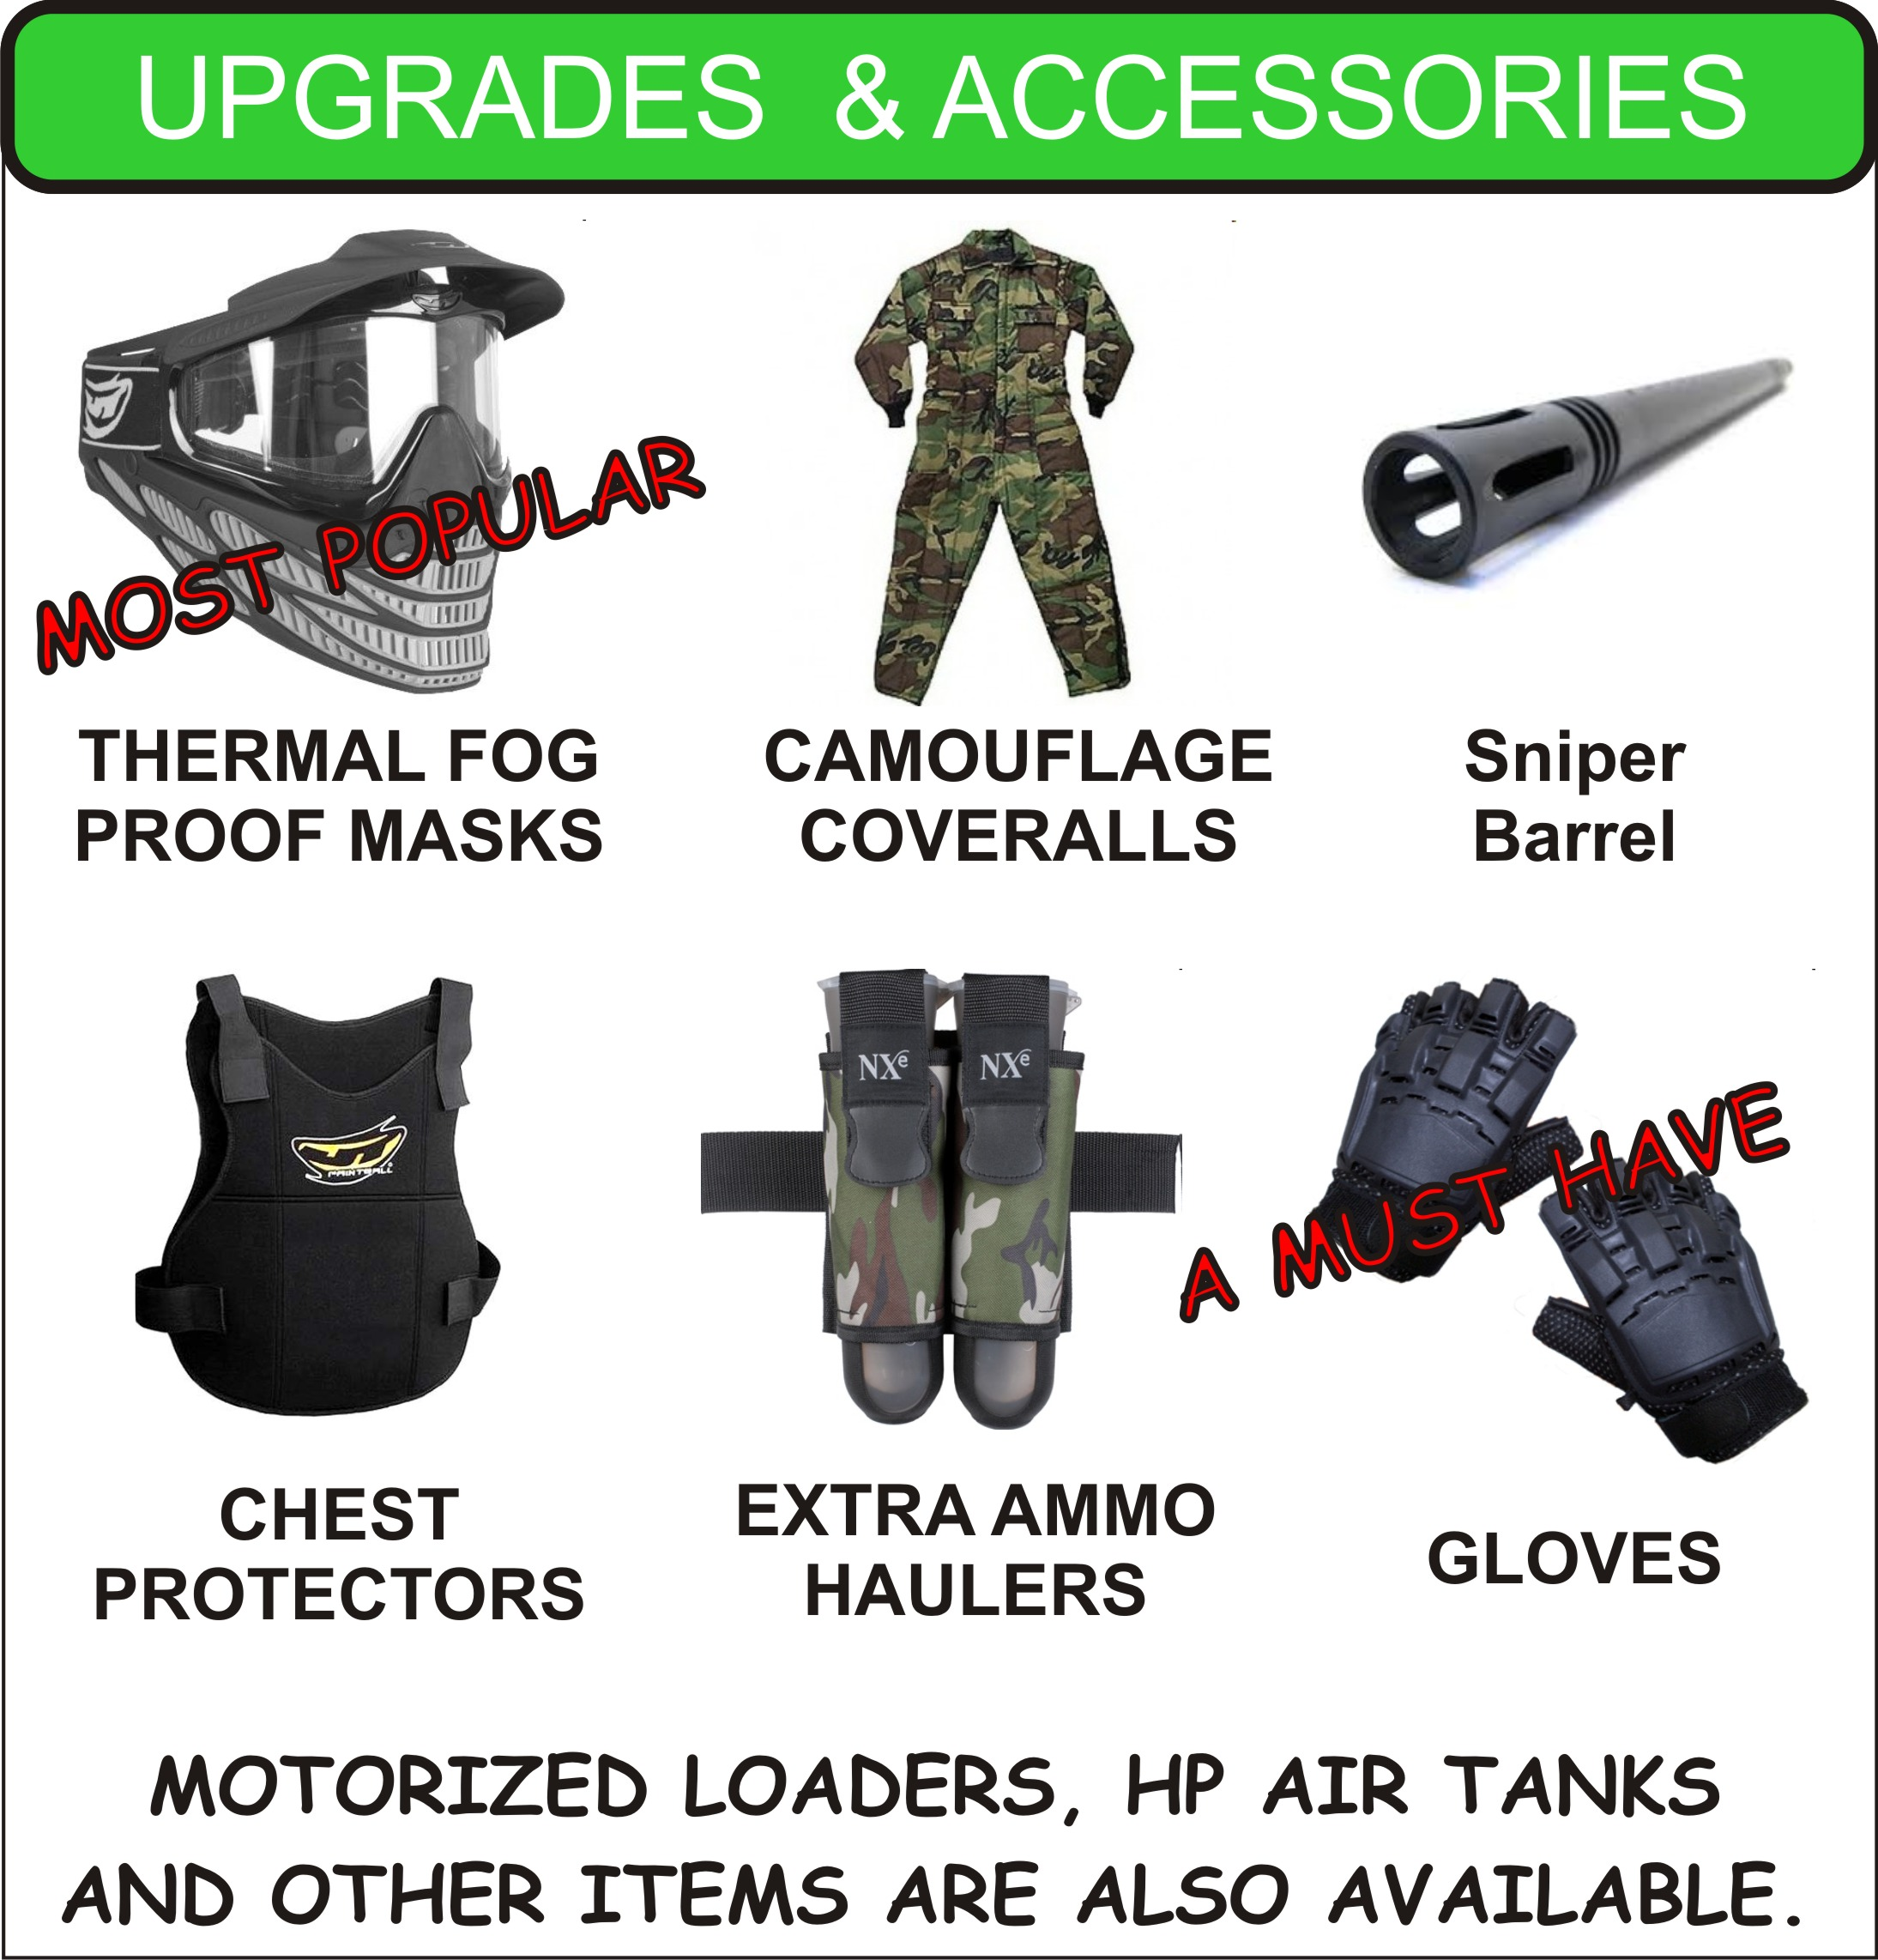 Elma Paintball rental upgrades